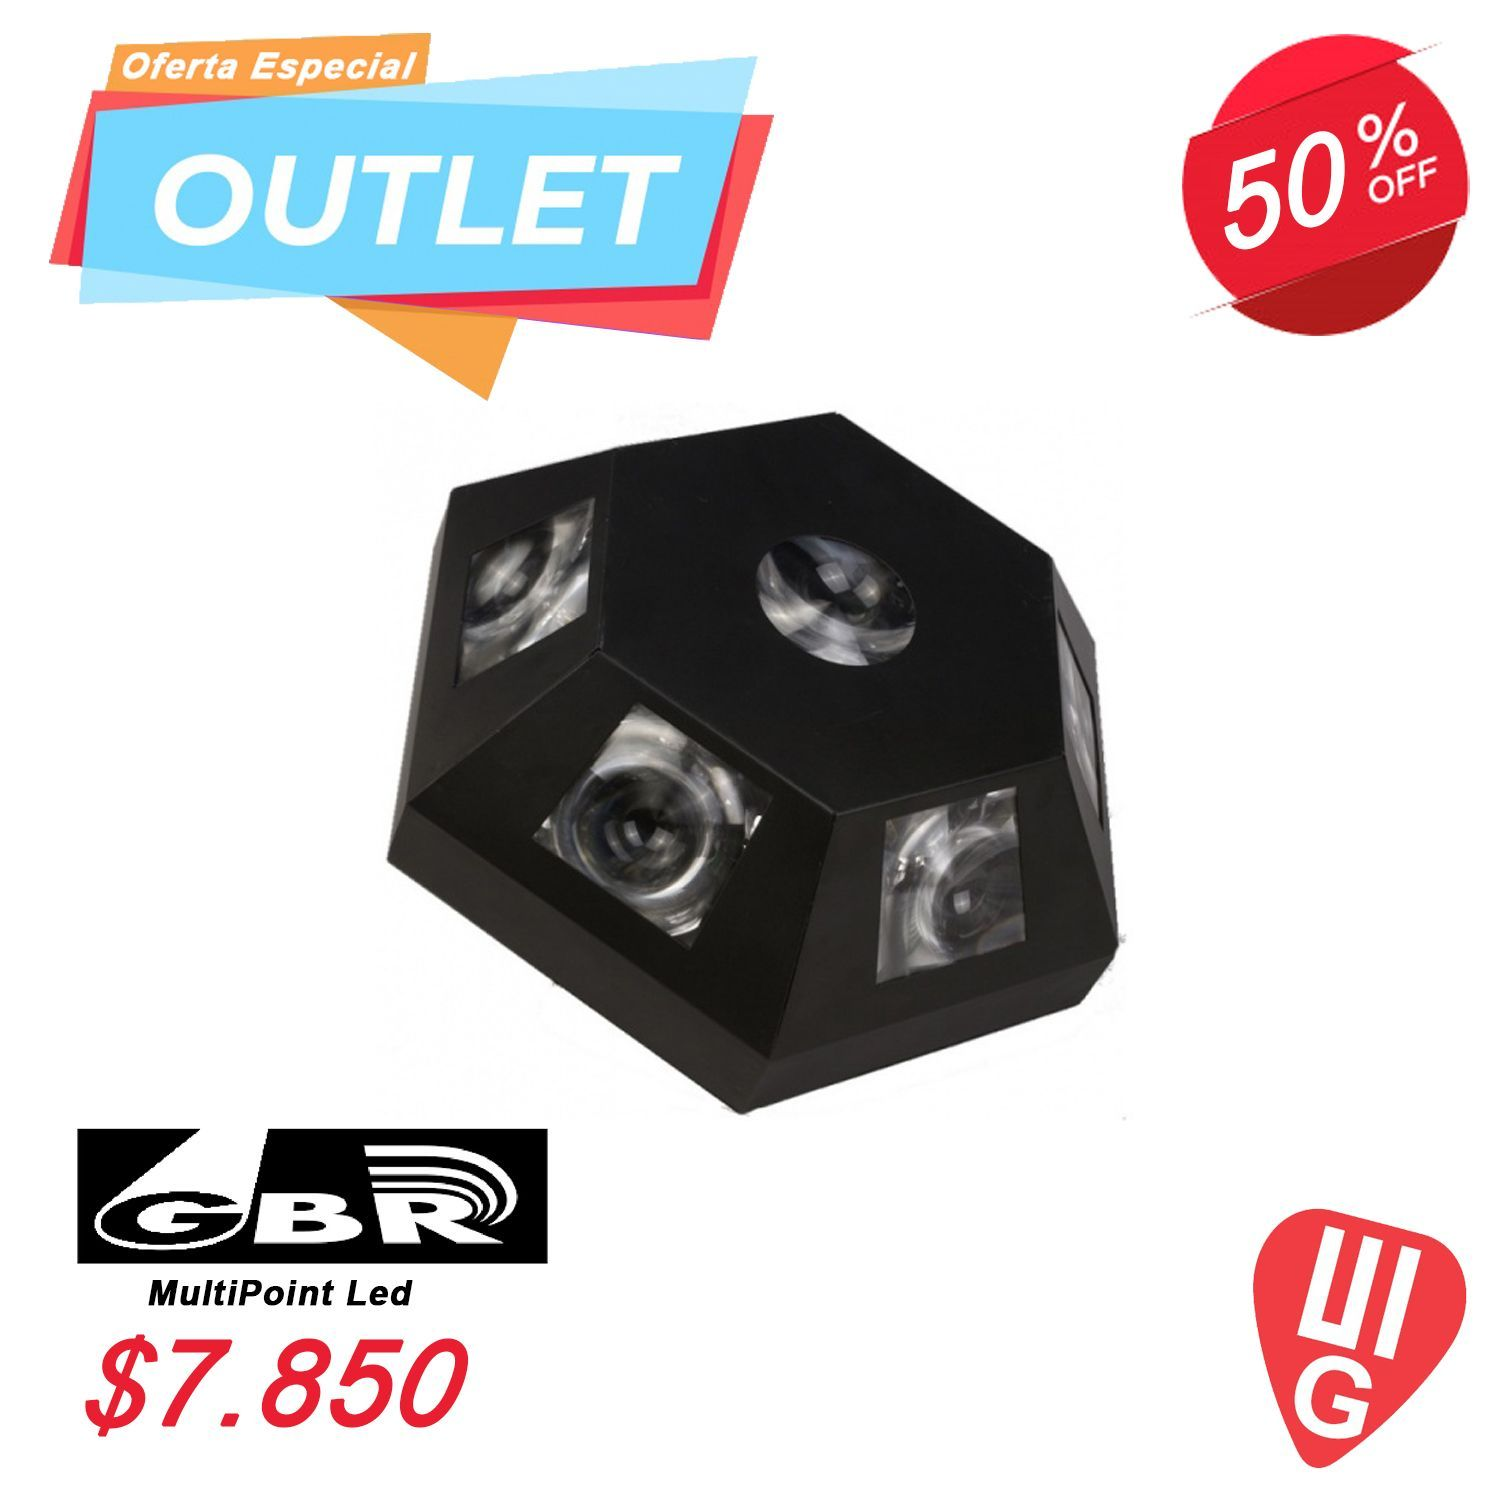 OUTLET MULTIPOINT